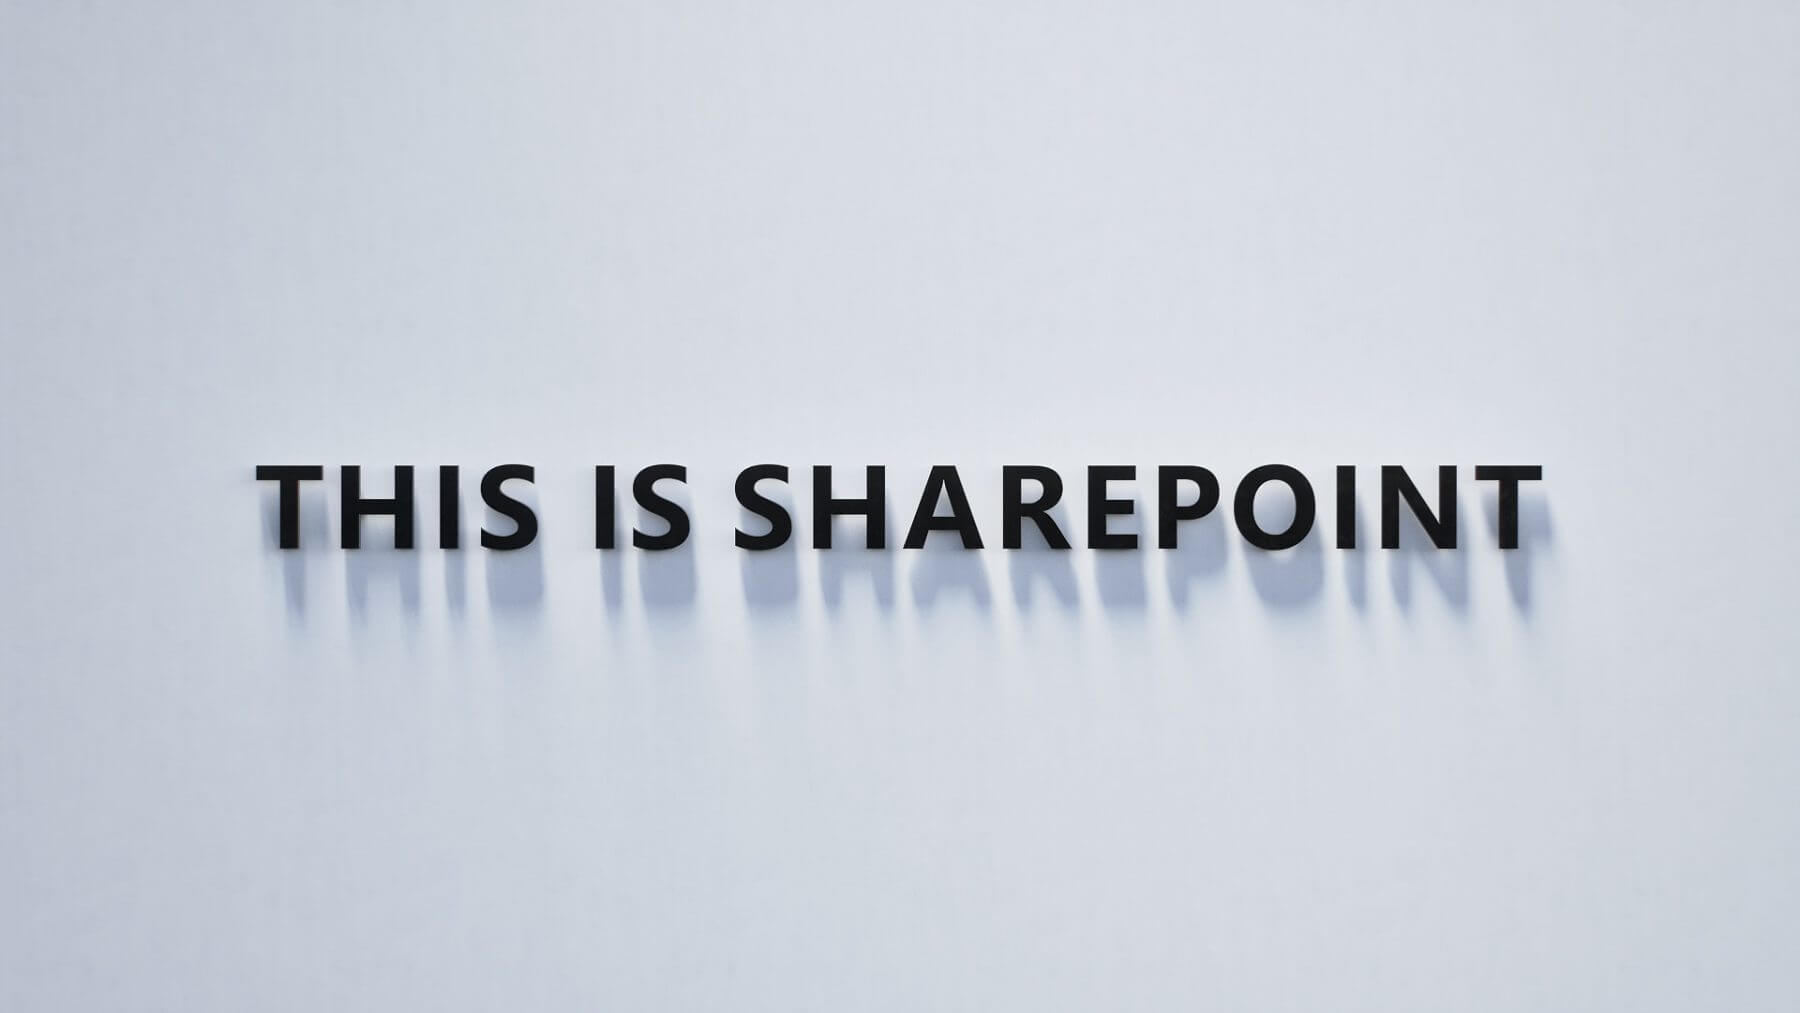 MS_SharePoint (1)